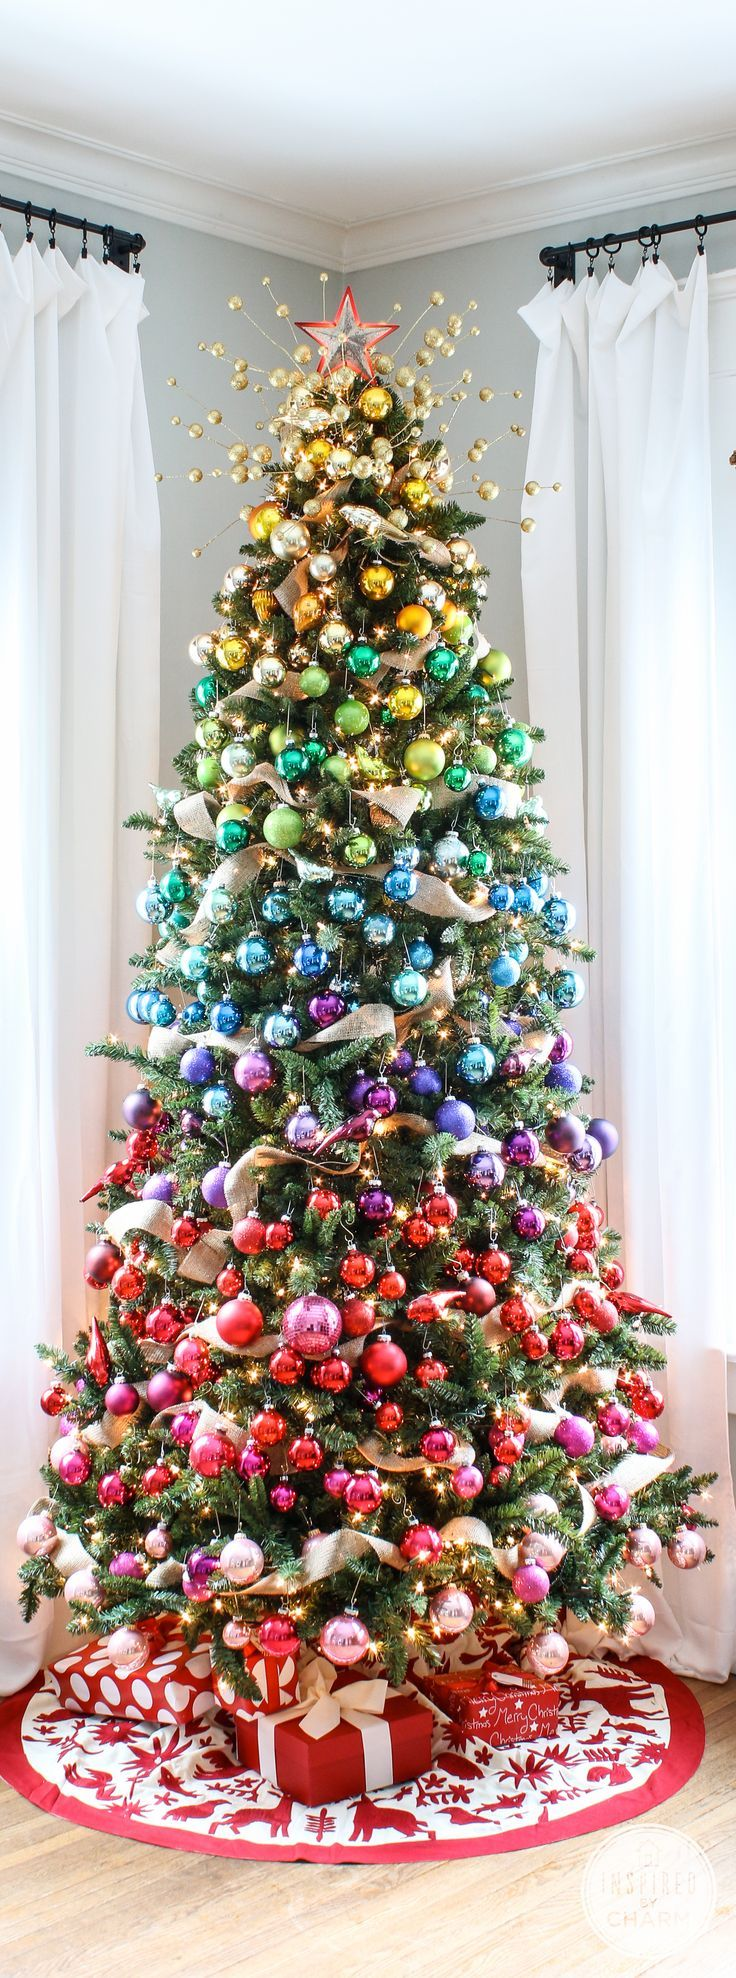 diy unique christmas trees ideas you should try this year - Pictures Of Pretty Decorated Christmas Trees